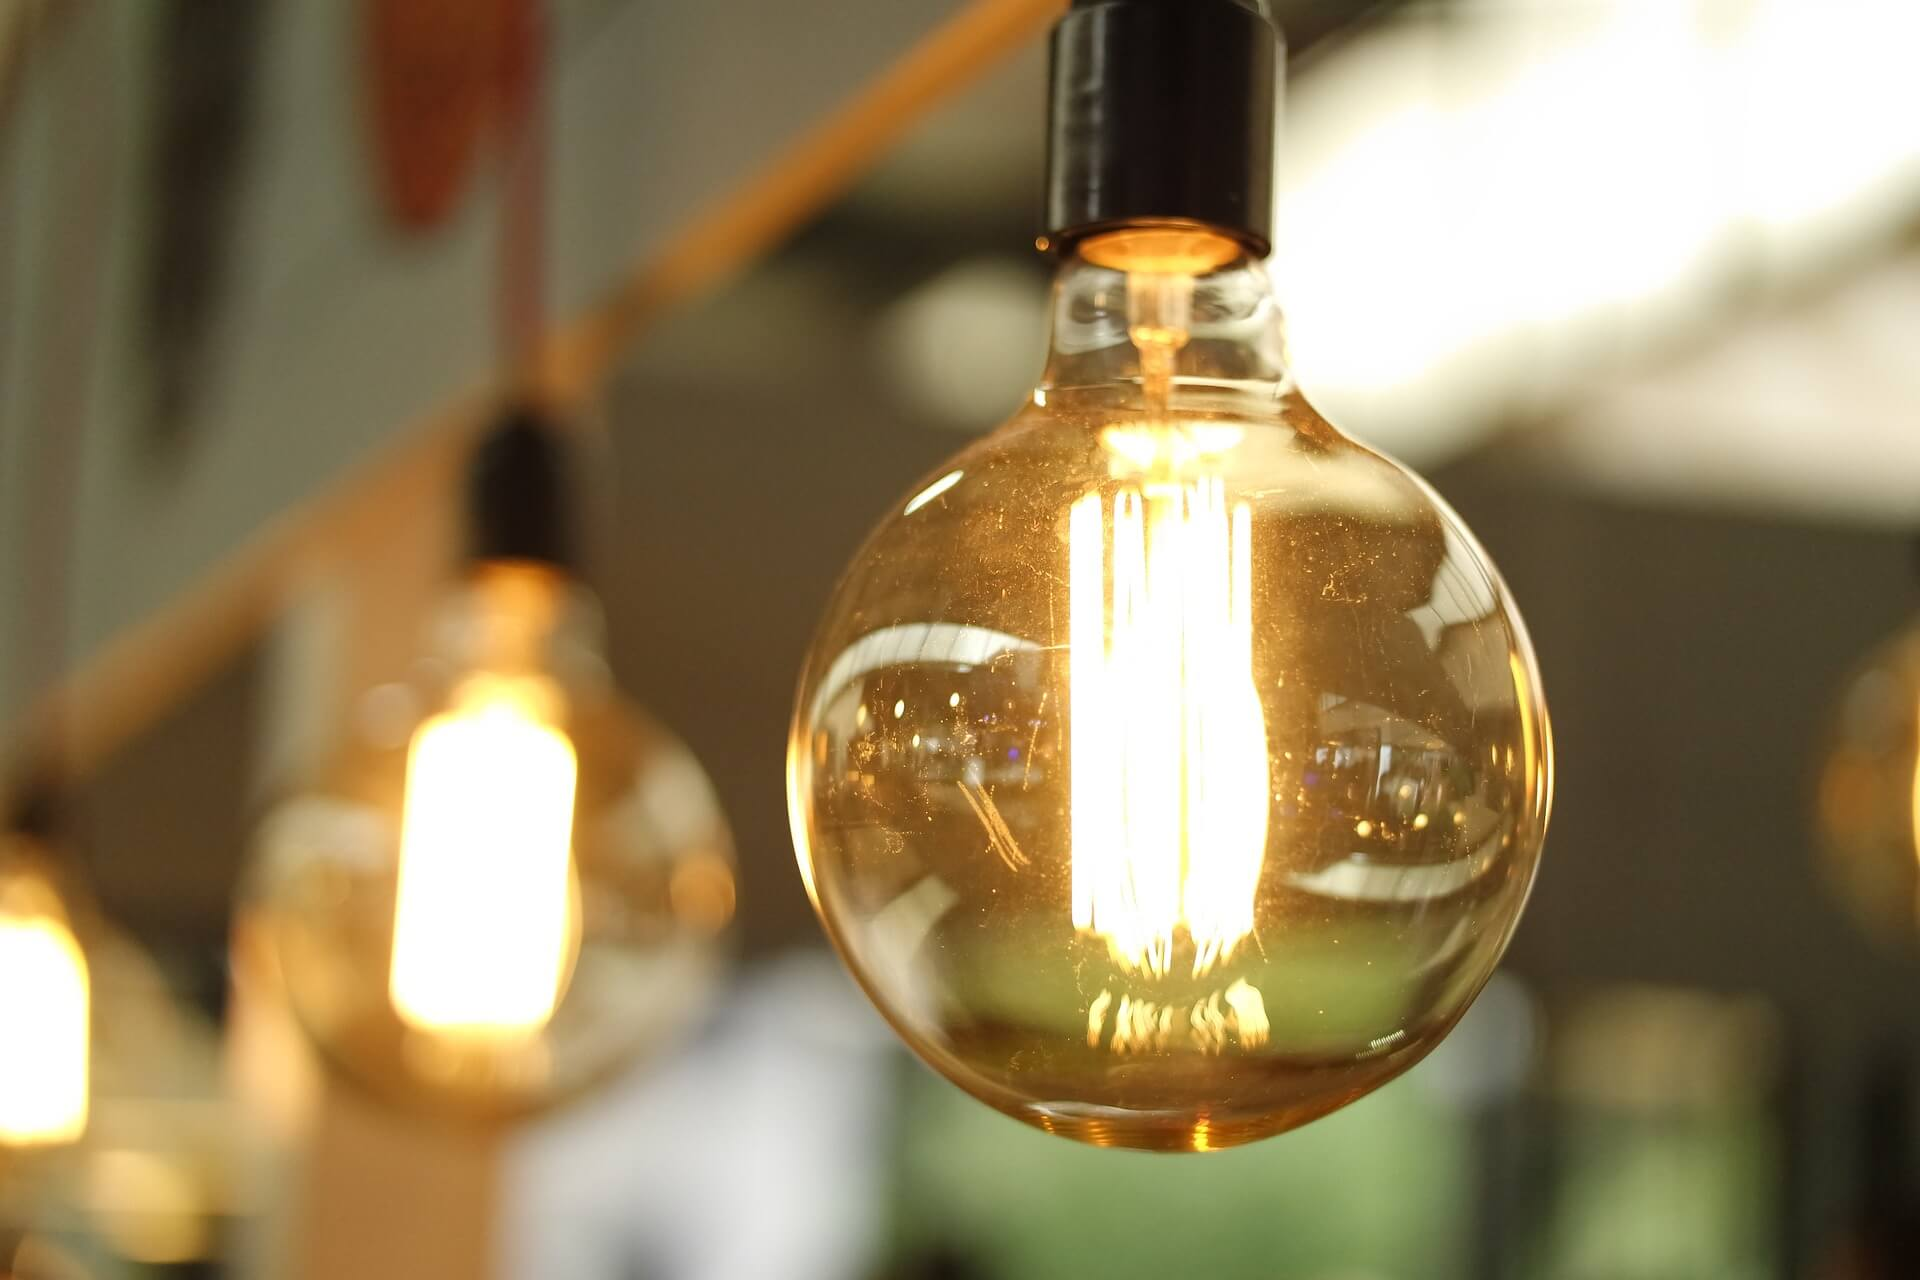 Light bulb - blog post ideas for small businesses